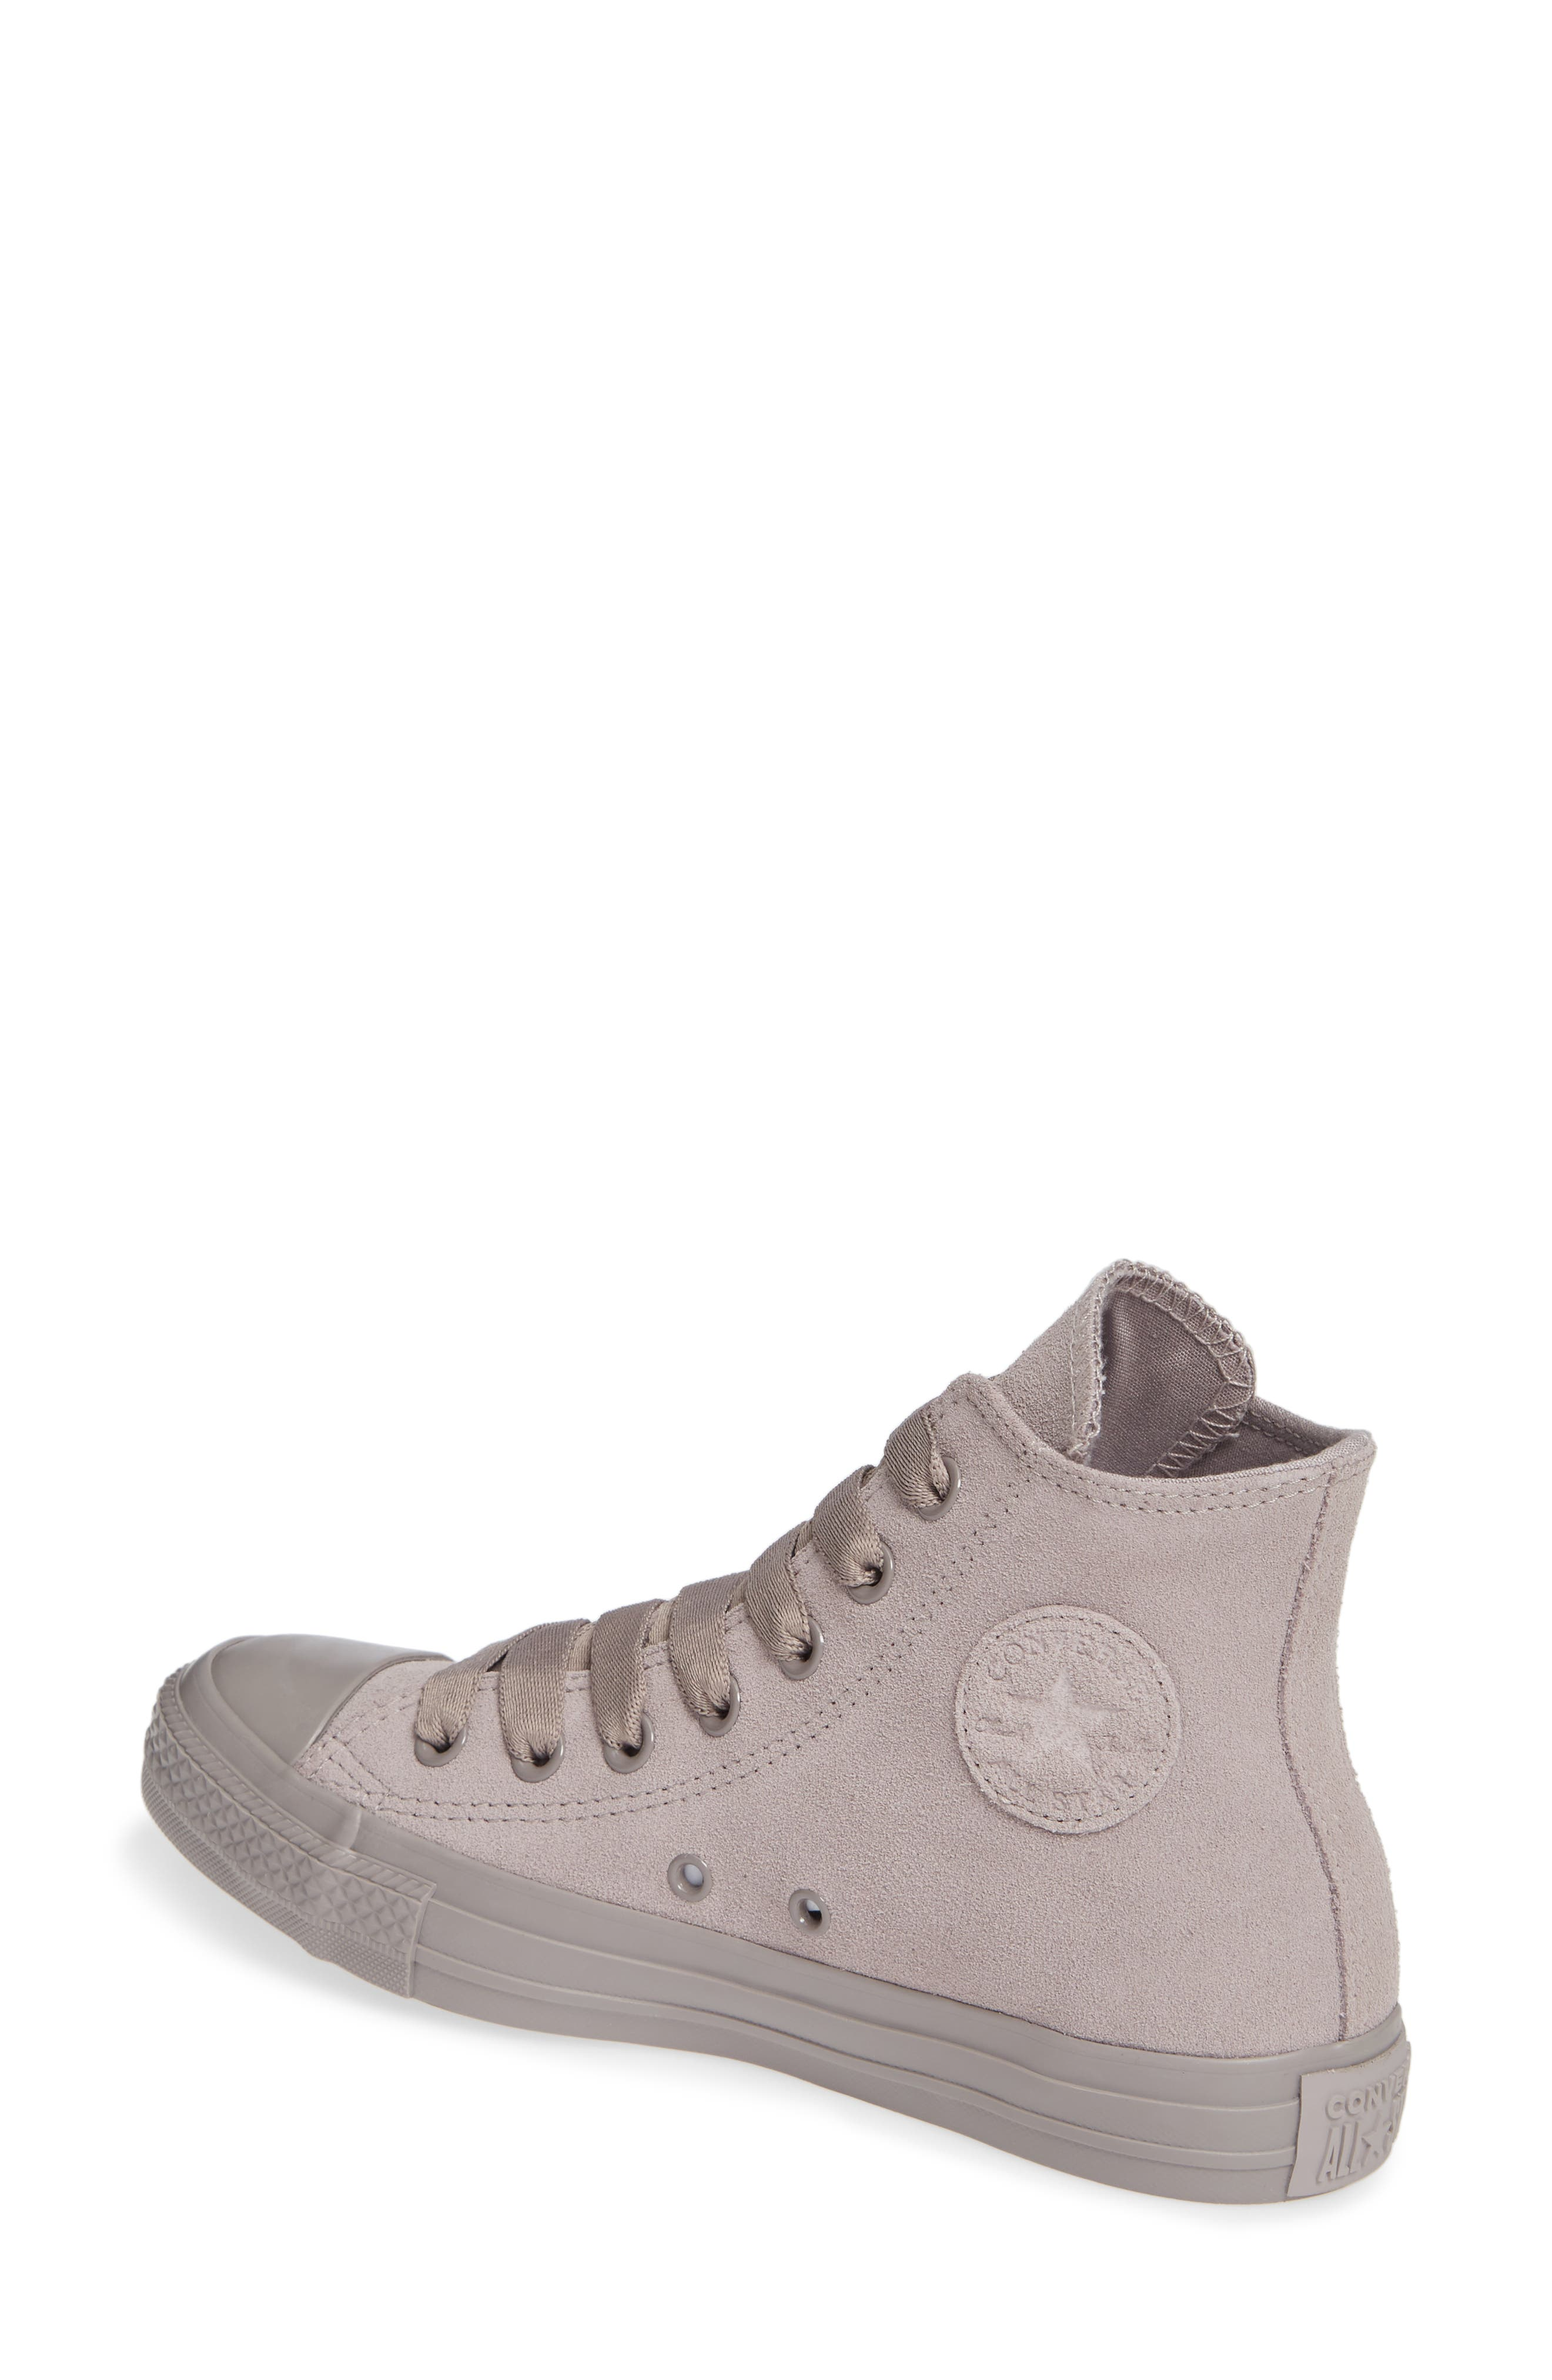 CONVERSE, Chuck Taylor<sup>®</sup> All Star<sup>®</sup> Hi Sneaker, Alternate thumbnail 2, color, MERCURY GREY SUEDE